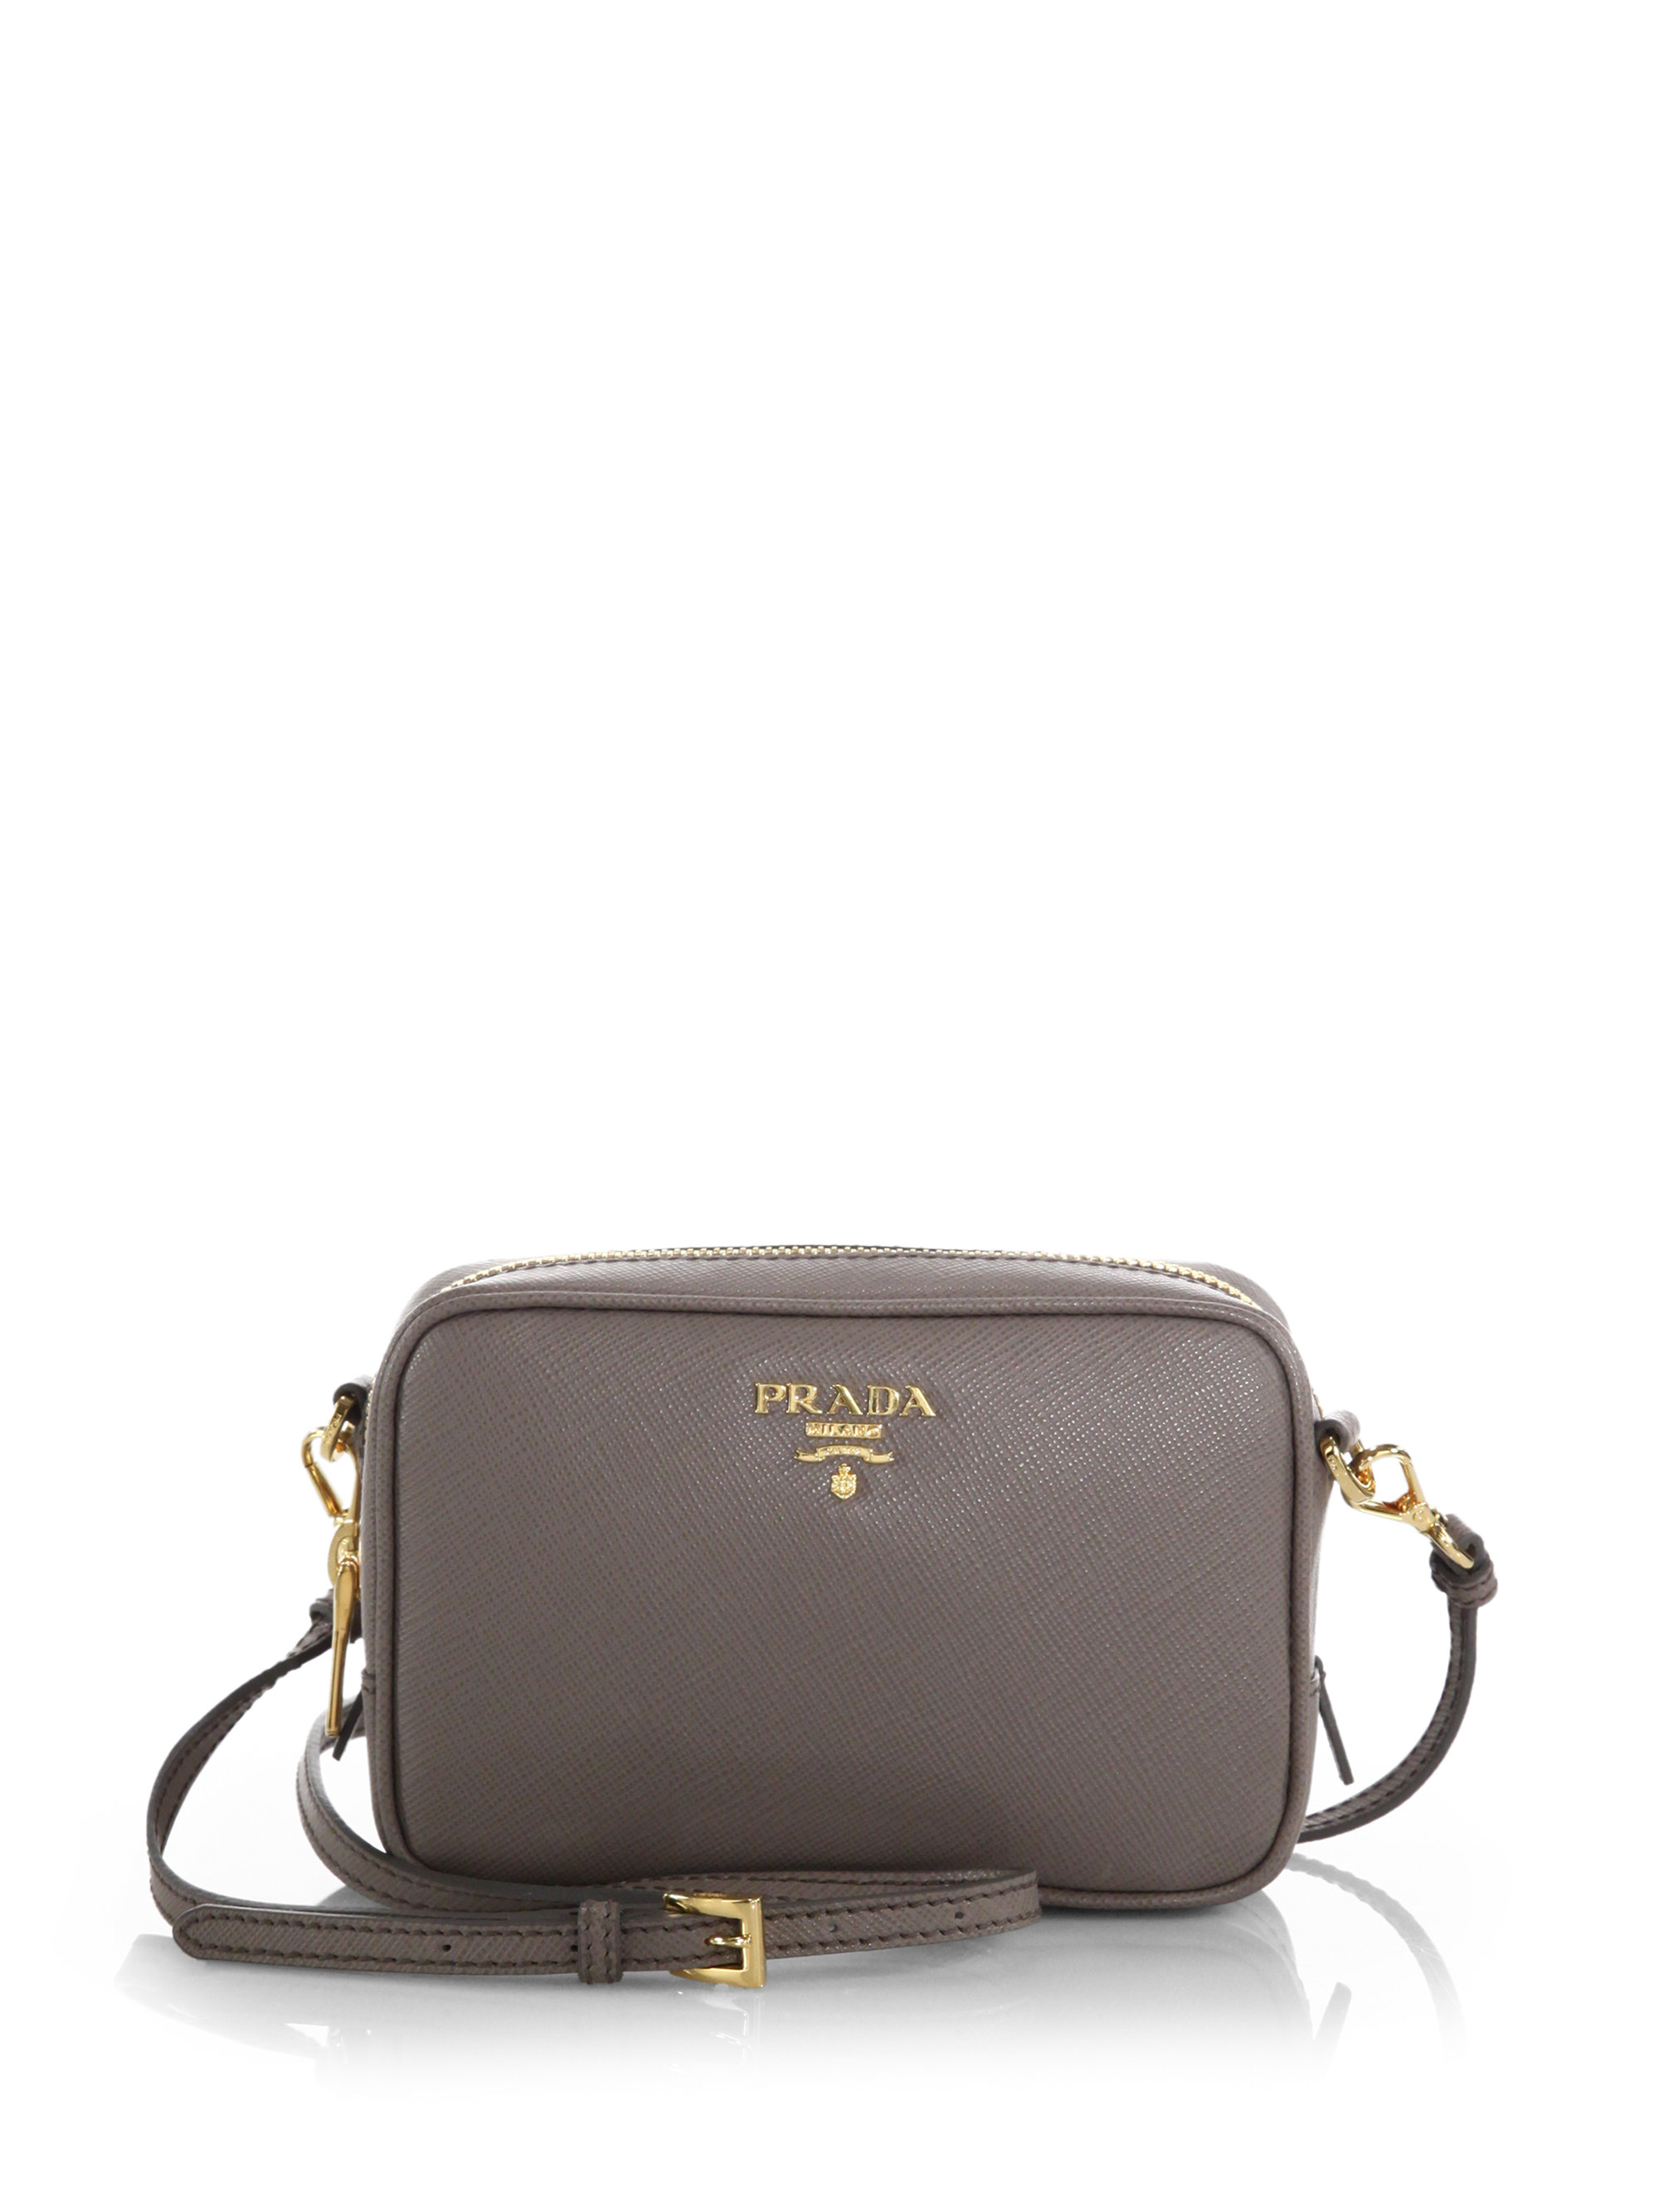 2fe23ec73d70 ... reduced lyst prada saffiano leather camera bag in gray bcef6 32d6b